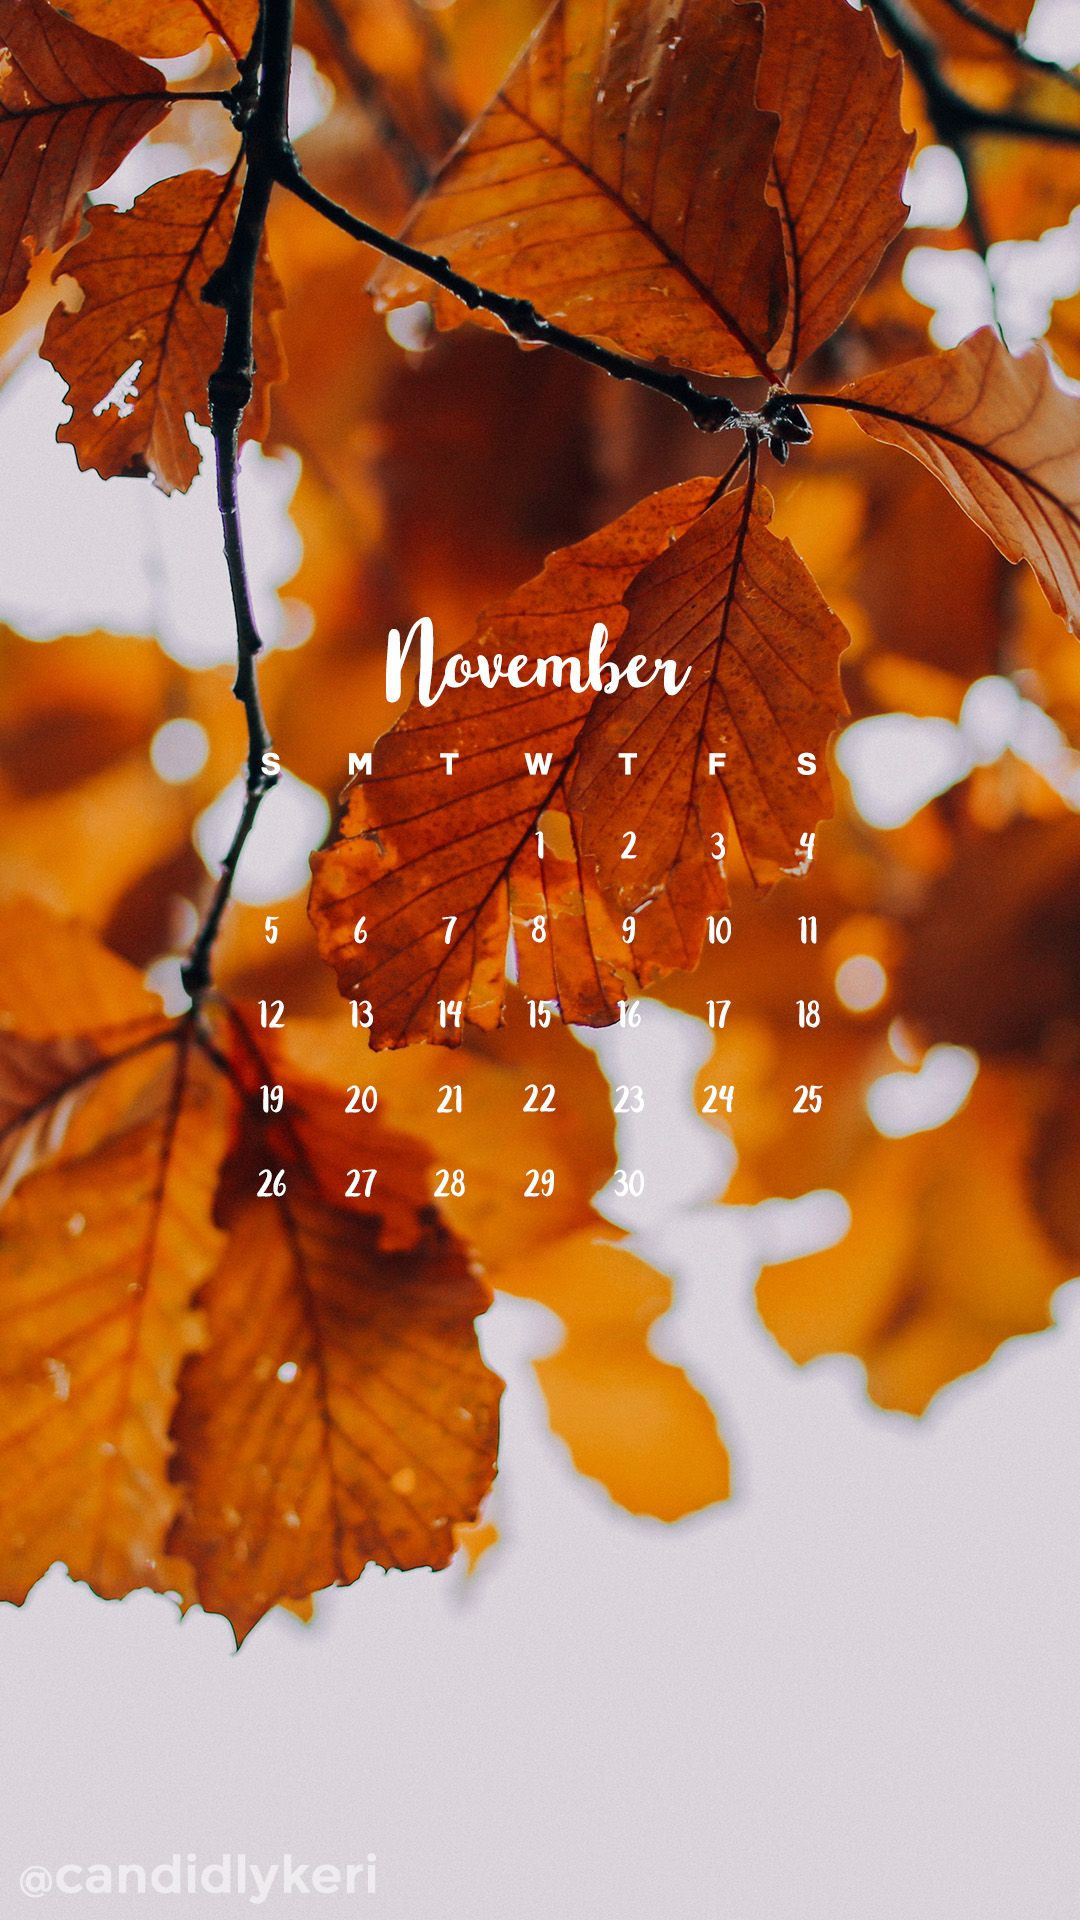 golden changing fall leaves november calendar 2017 wallpaper you can download on the blog  for a